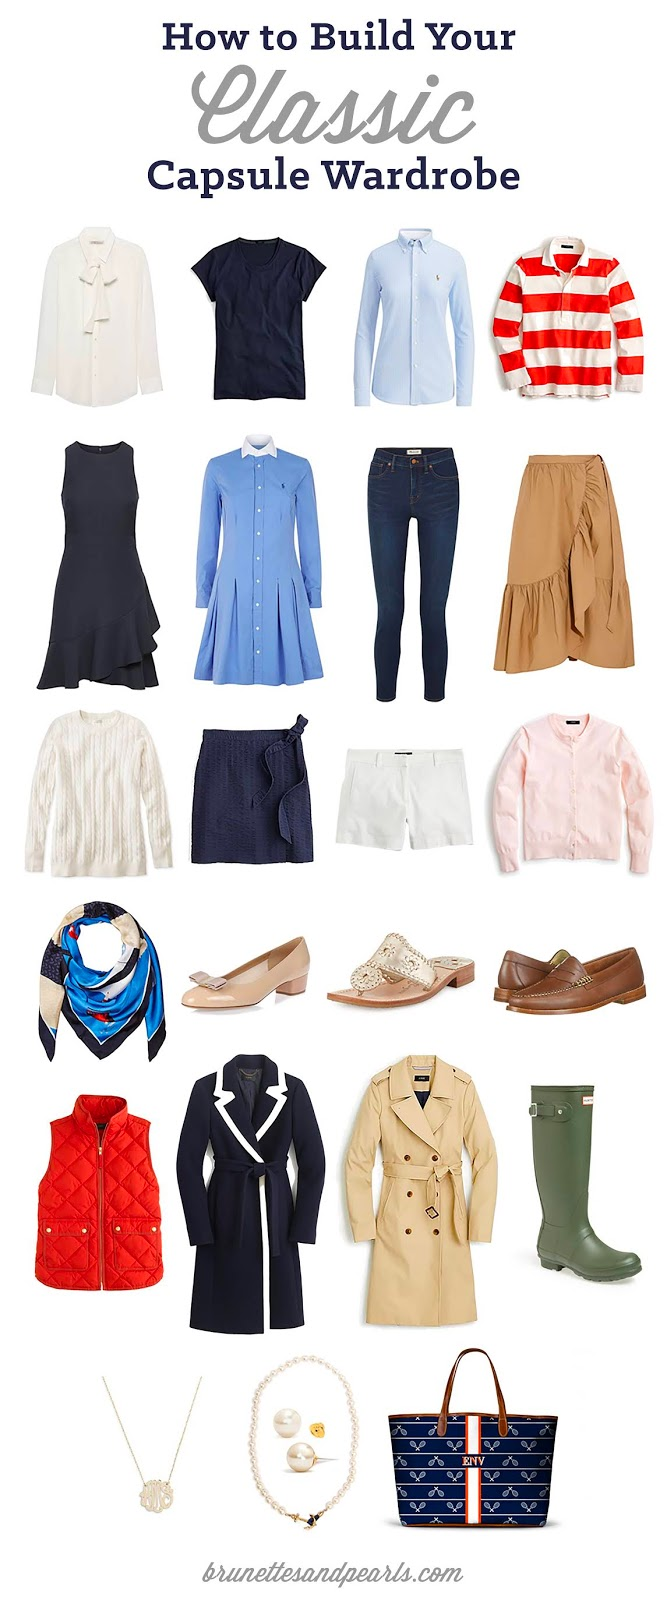 How to functional build and fashionable wardrobe